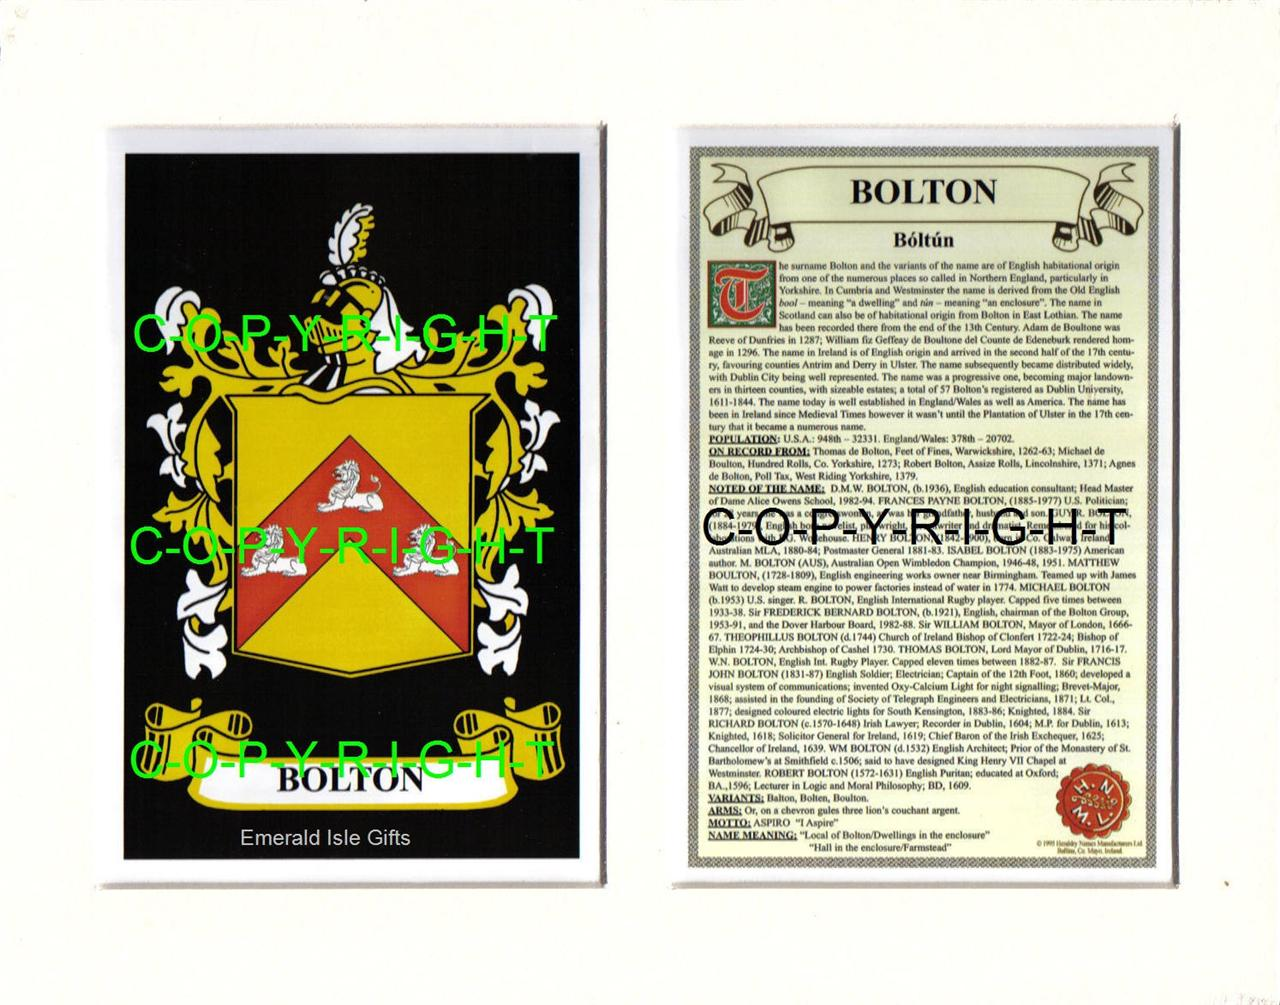 BOLTON-Family-Coat-of-Arms-Crest-History-Available-Mounted-or-Framed